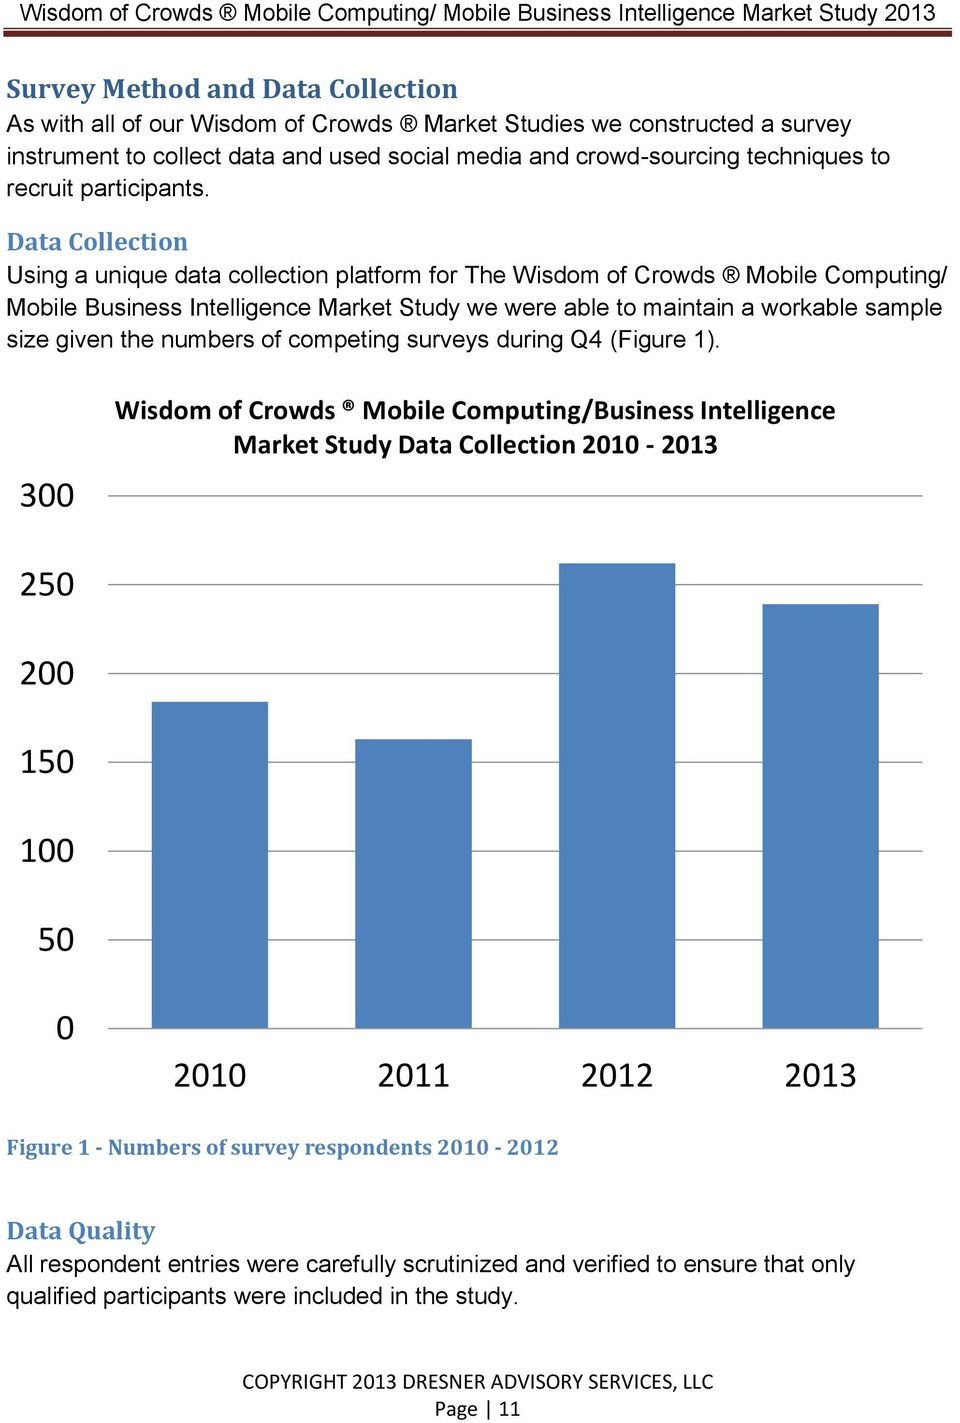 Data Collection Using a unique data collection platform for The Wisdom of Crowds Mobile Computing/ Mobile Business Intelligence Market Study we were able to maintain a workable sample size given the